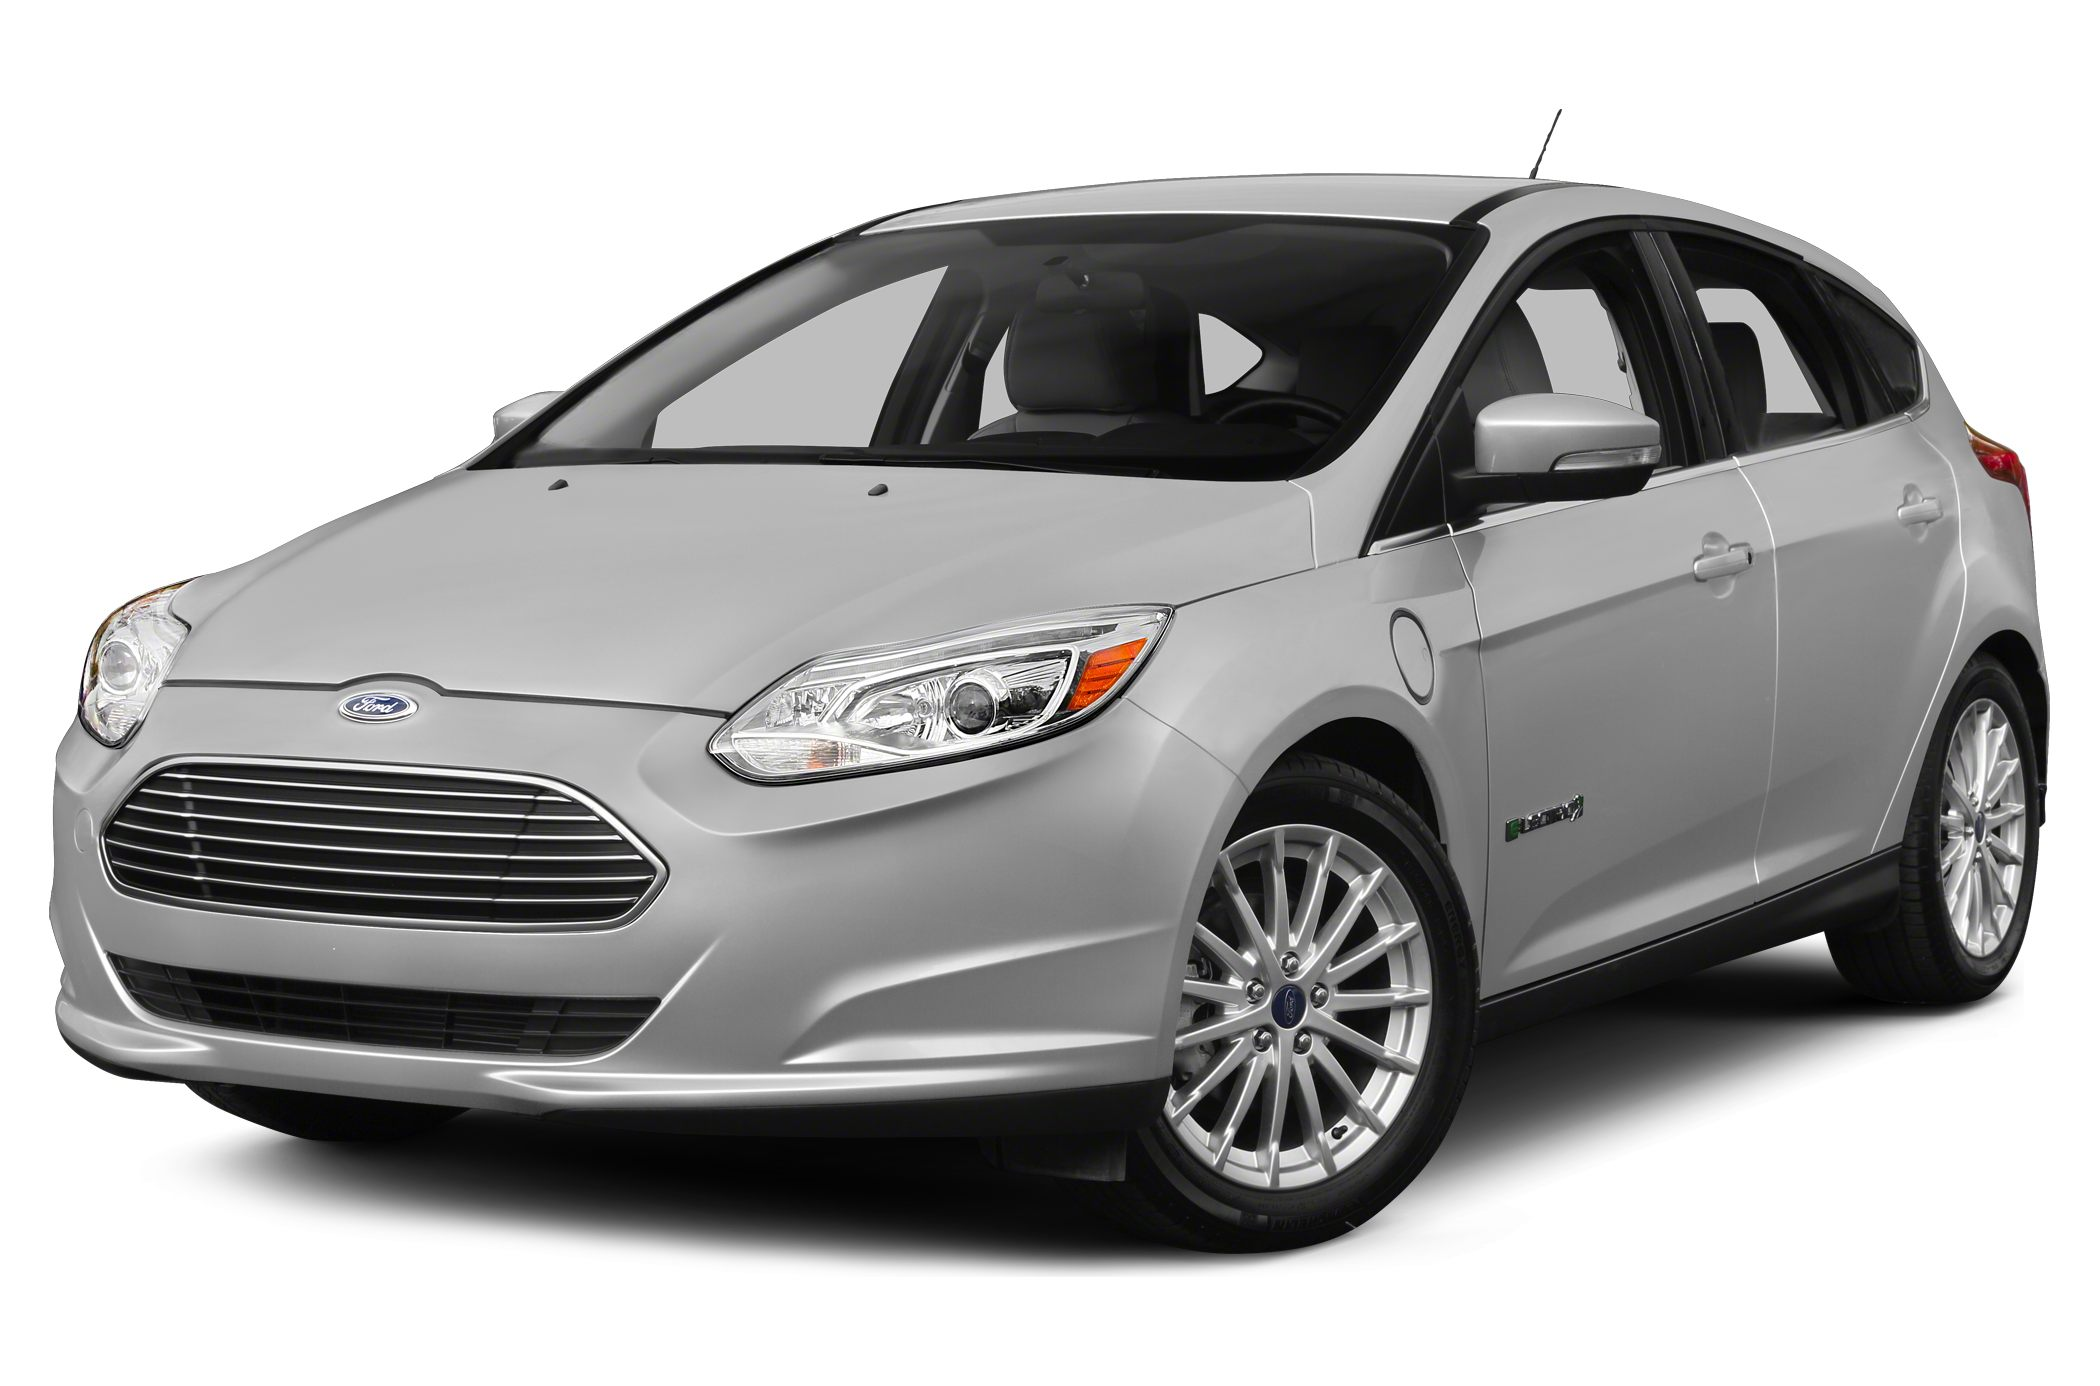 2012 Ford Focus Electric Base Hatchback for sale in Seattle for $18,995 with 27,647 miles